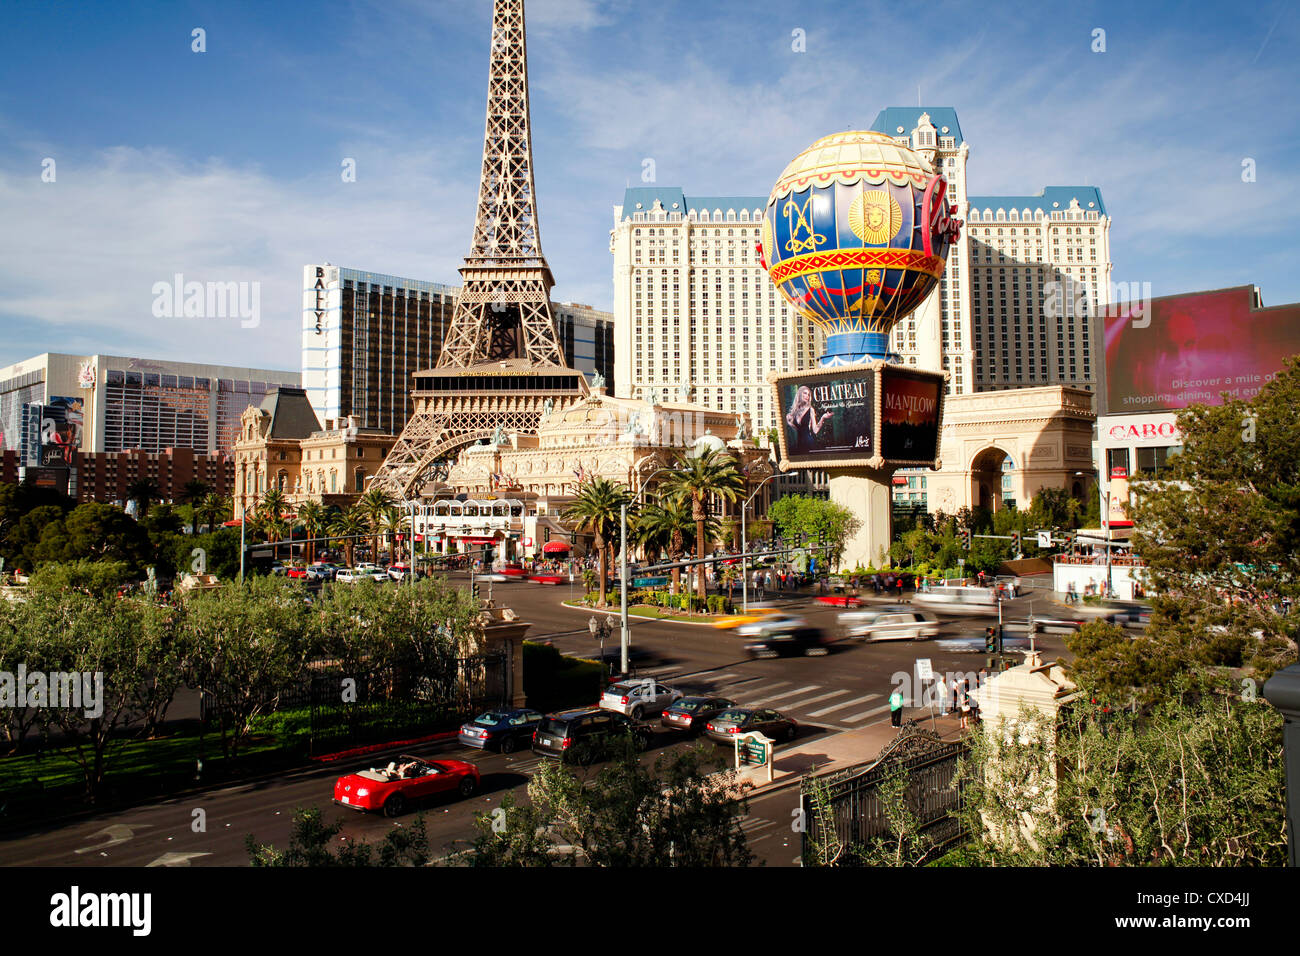 Paris Casino on The Strip, Las Vegas, Nevada, United States of America, North America Stock Photo